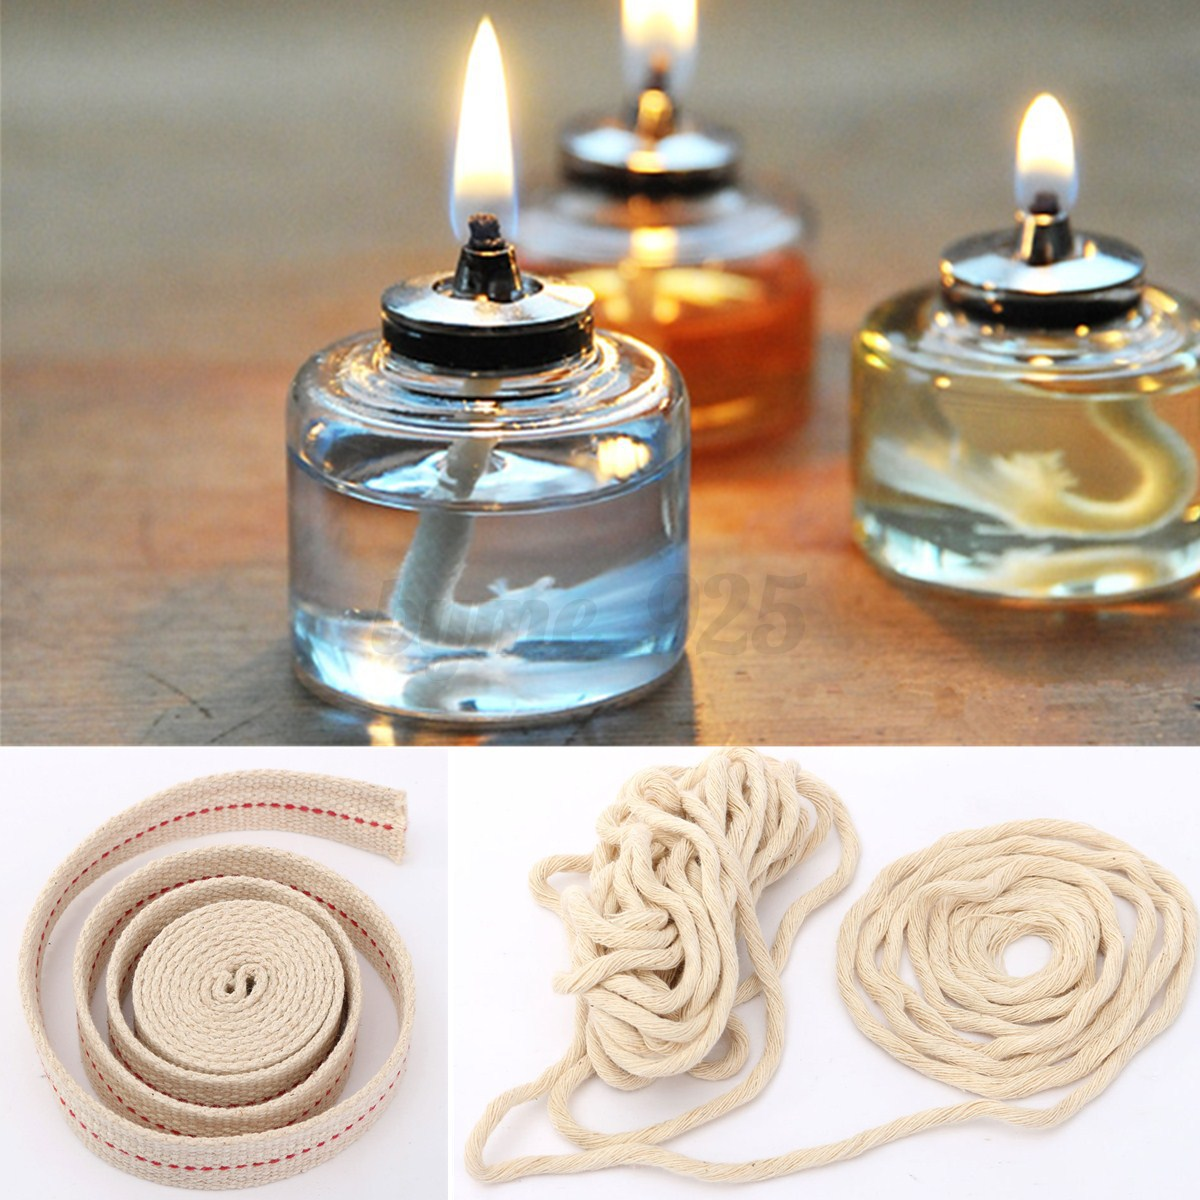 how to make a rope wick applicator